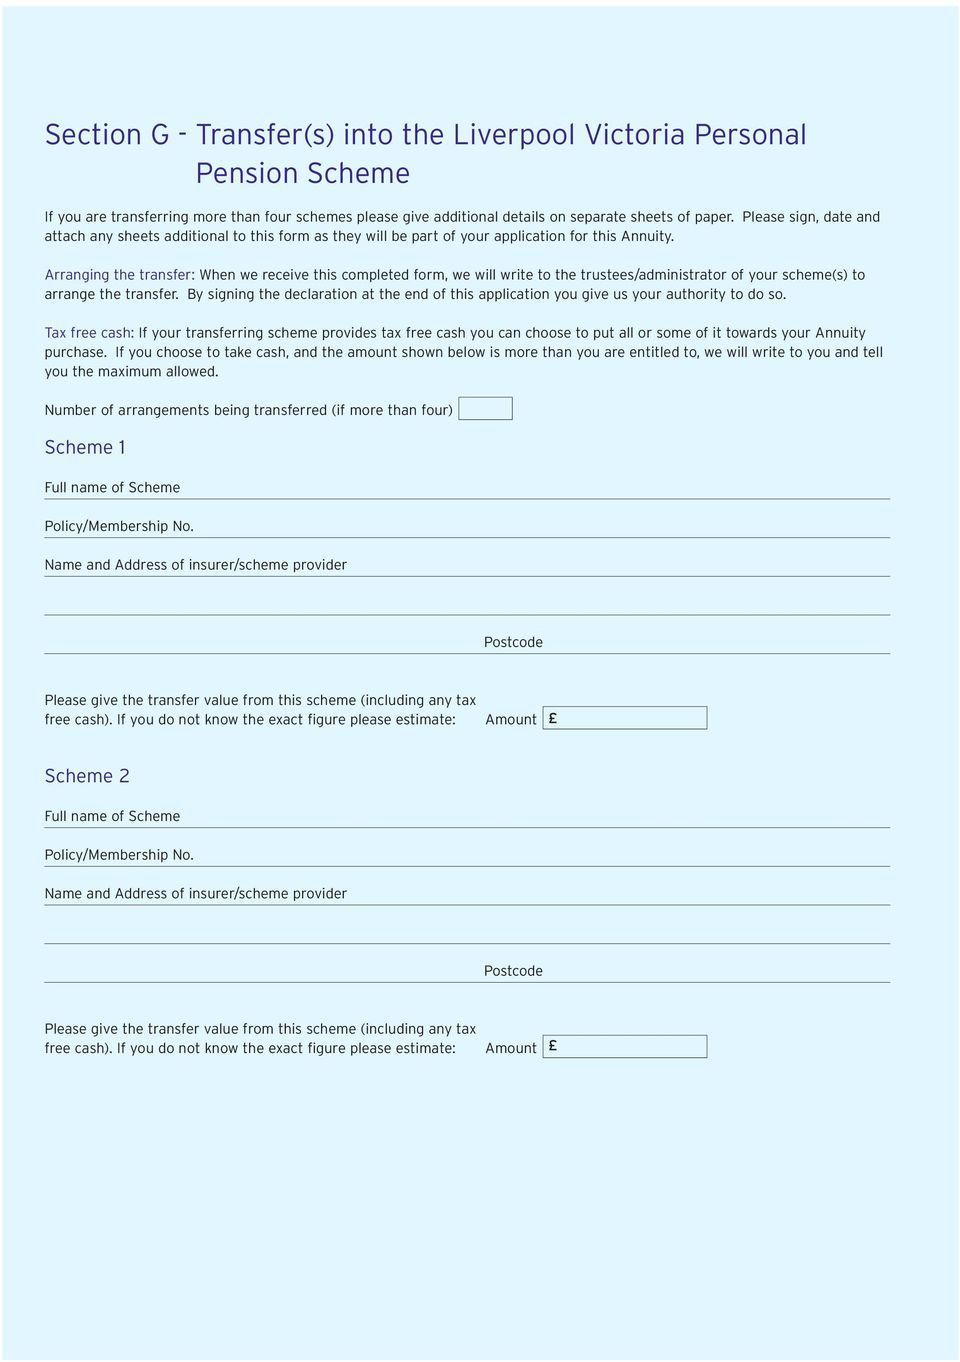 Arranging the transfer: When we receive this completed form, we will write to the trustees/administrator of your scheme(s) to arrange the transfer.